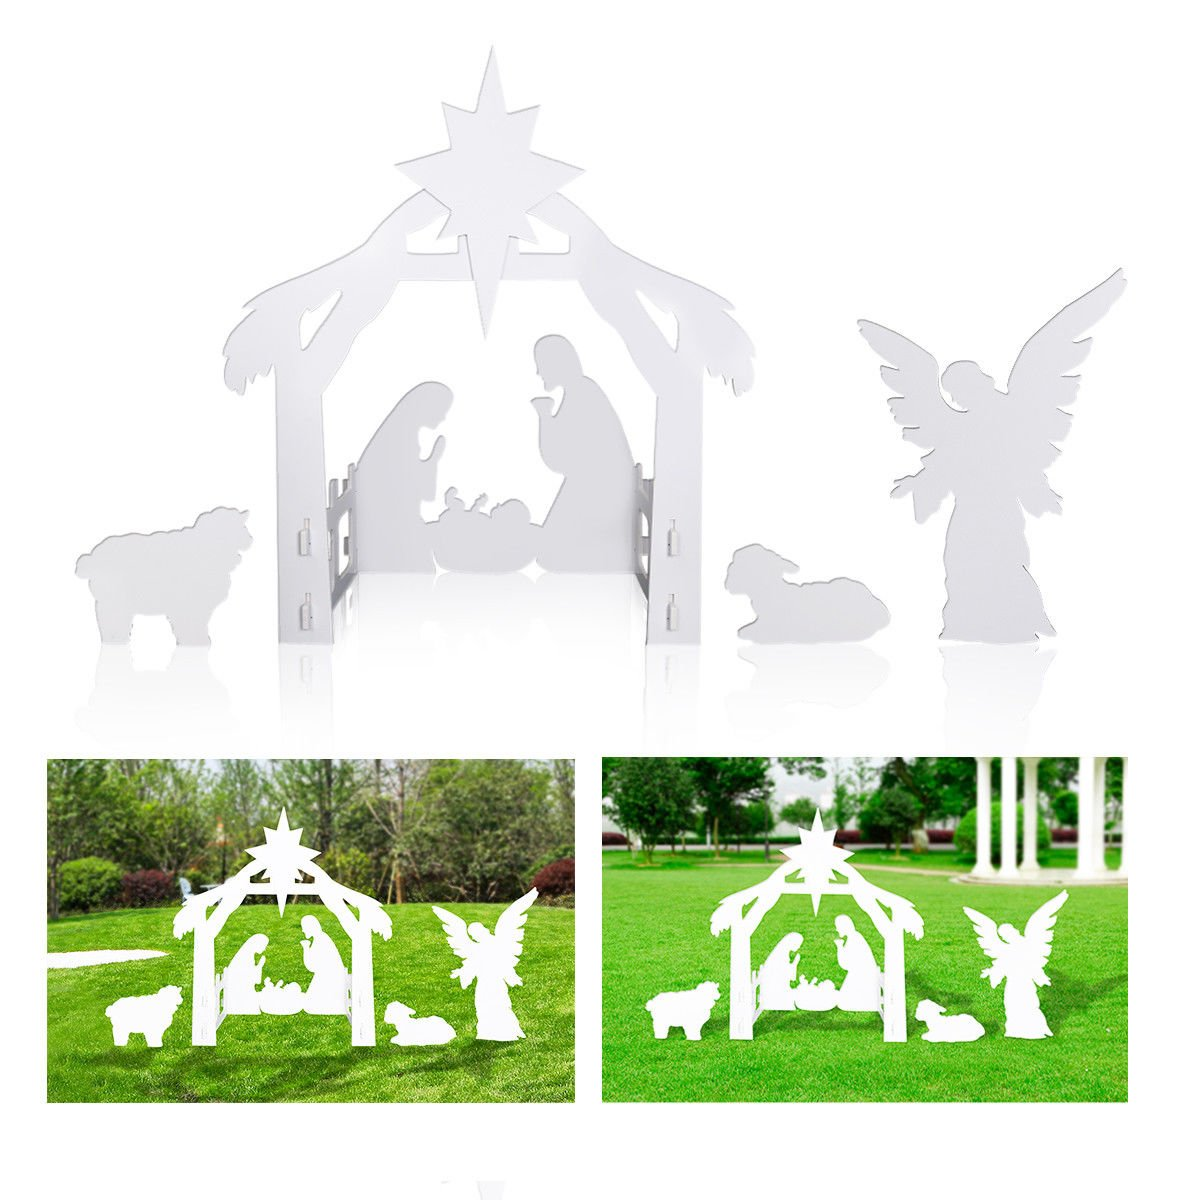 Giant Outdoor Nativity Scene - Large Christmas Yard Decoration Set USA Seller by Generic/Unbranded